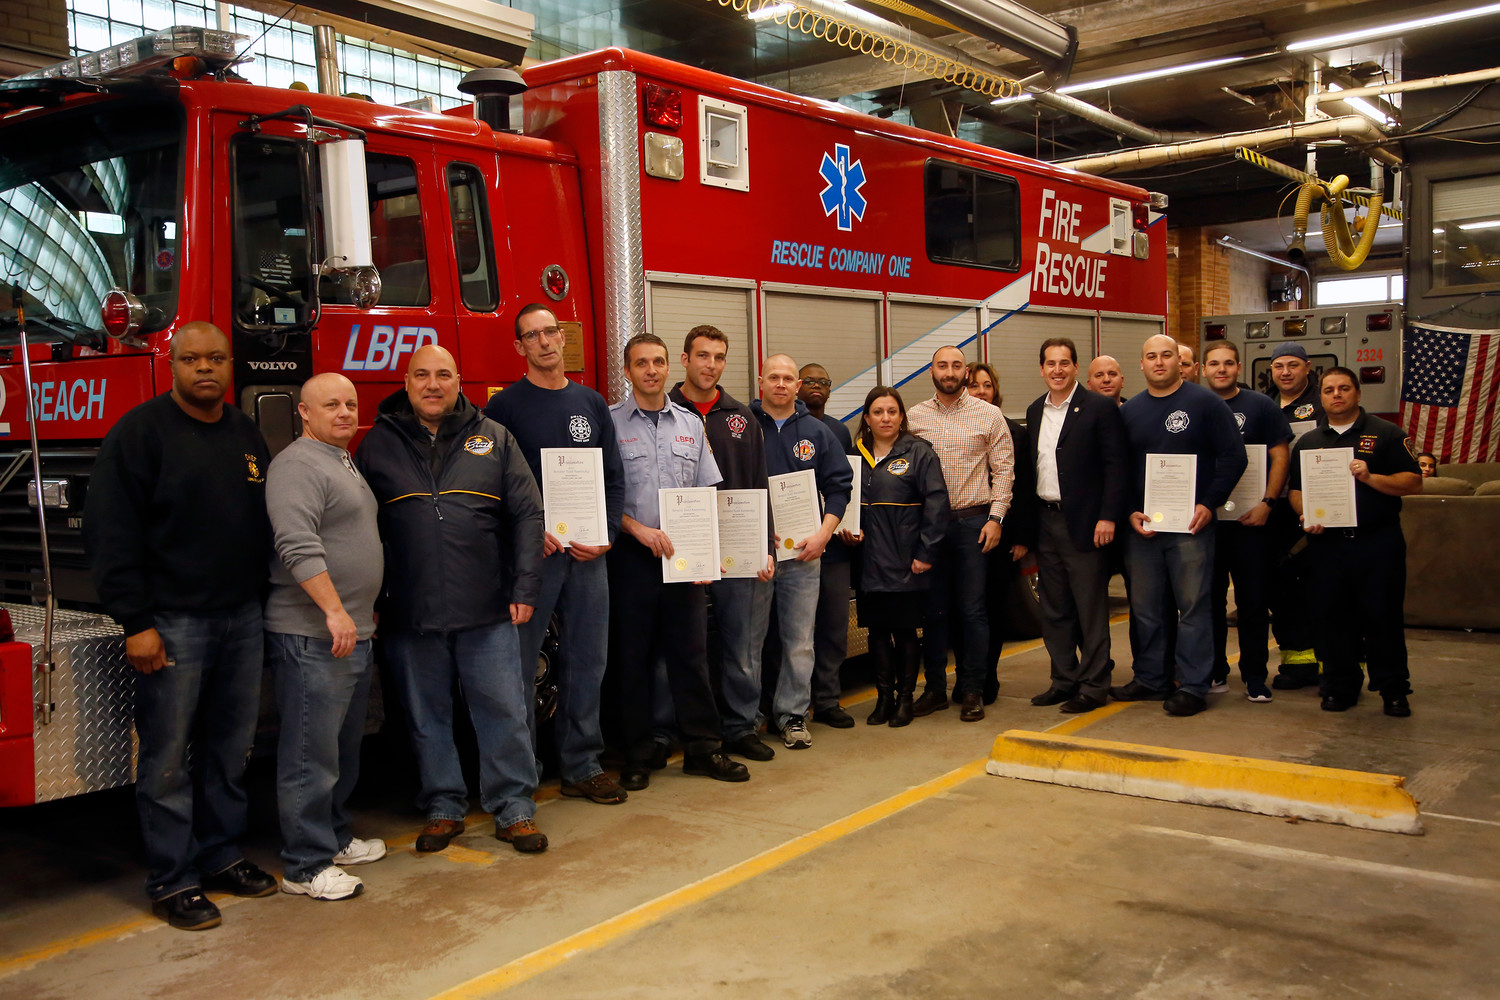 State Sen. Todd Kaminsky, seventh from right, honored members of the Long Beach Fire Department on Sunday for saving a trapped driver from his overturned vehicle on Feb. 15.